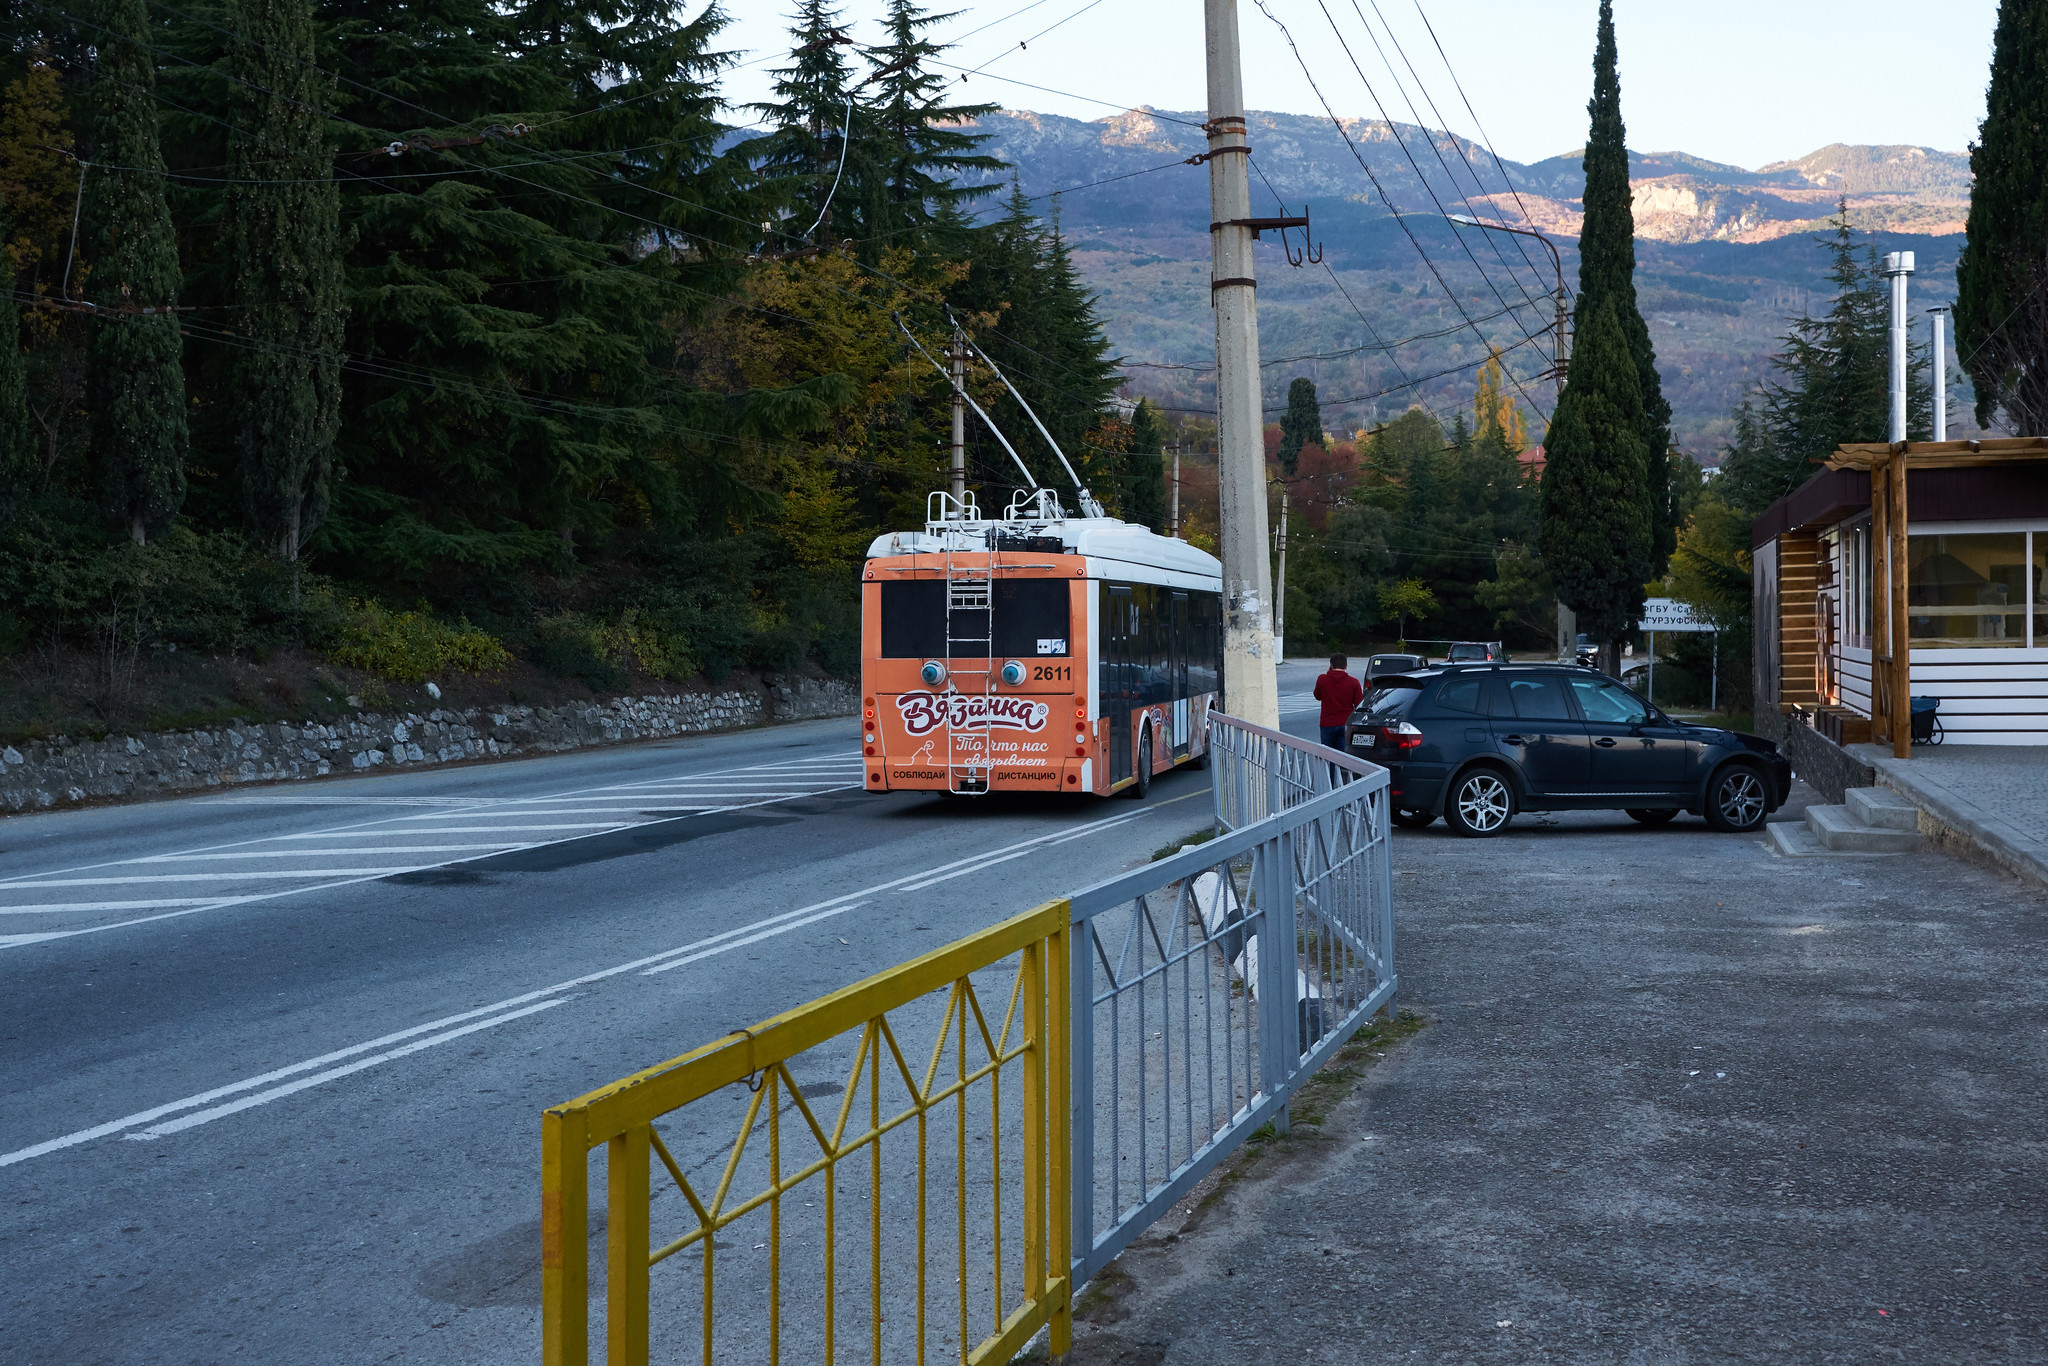 The trolleybus no 52 is seen leaving the bus stop near Gurzuf in the Crimea. October 31st 2018.